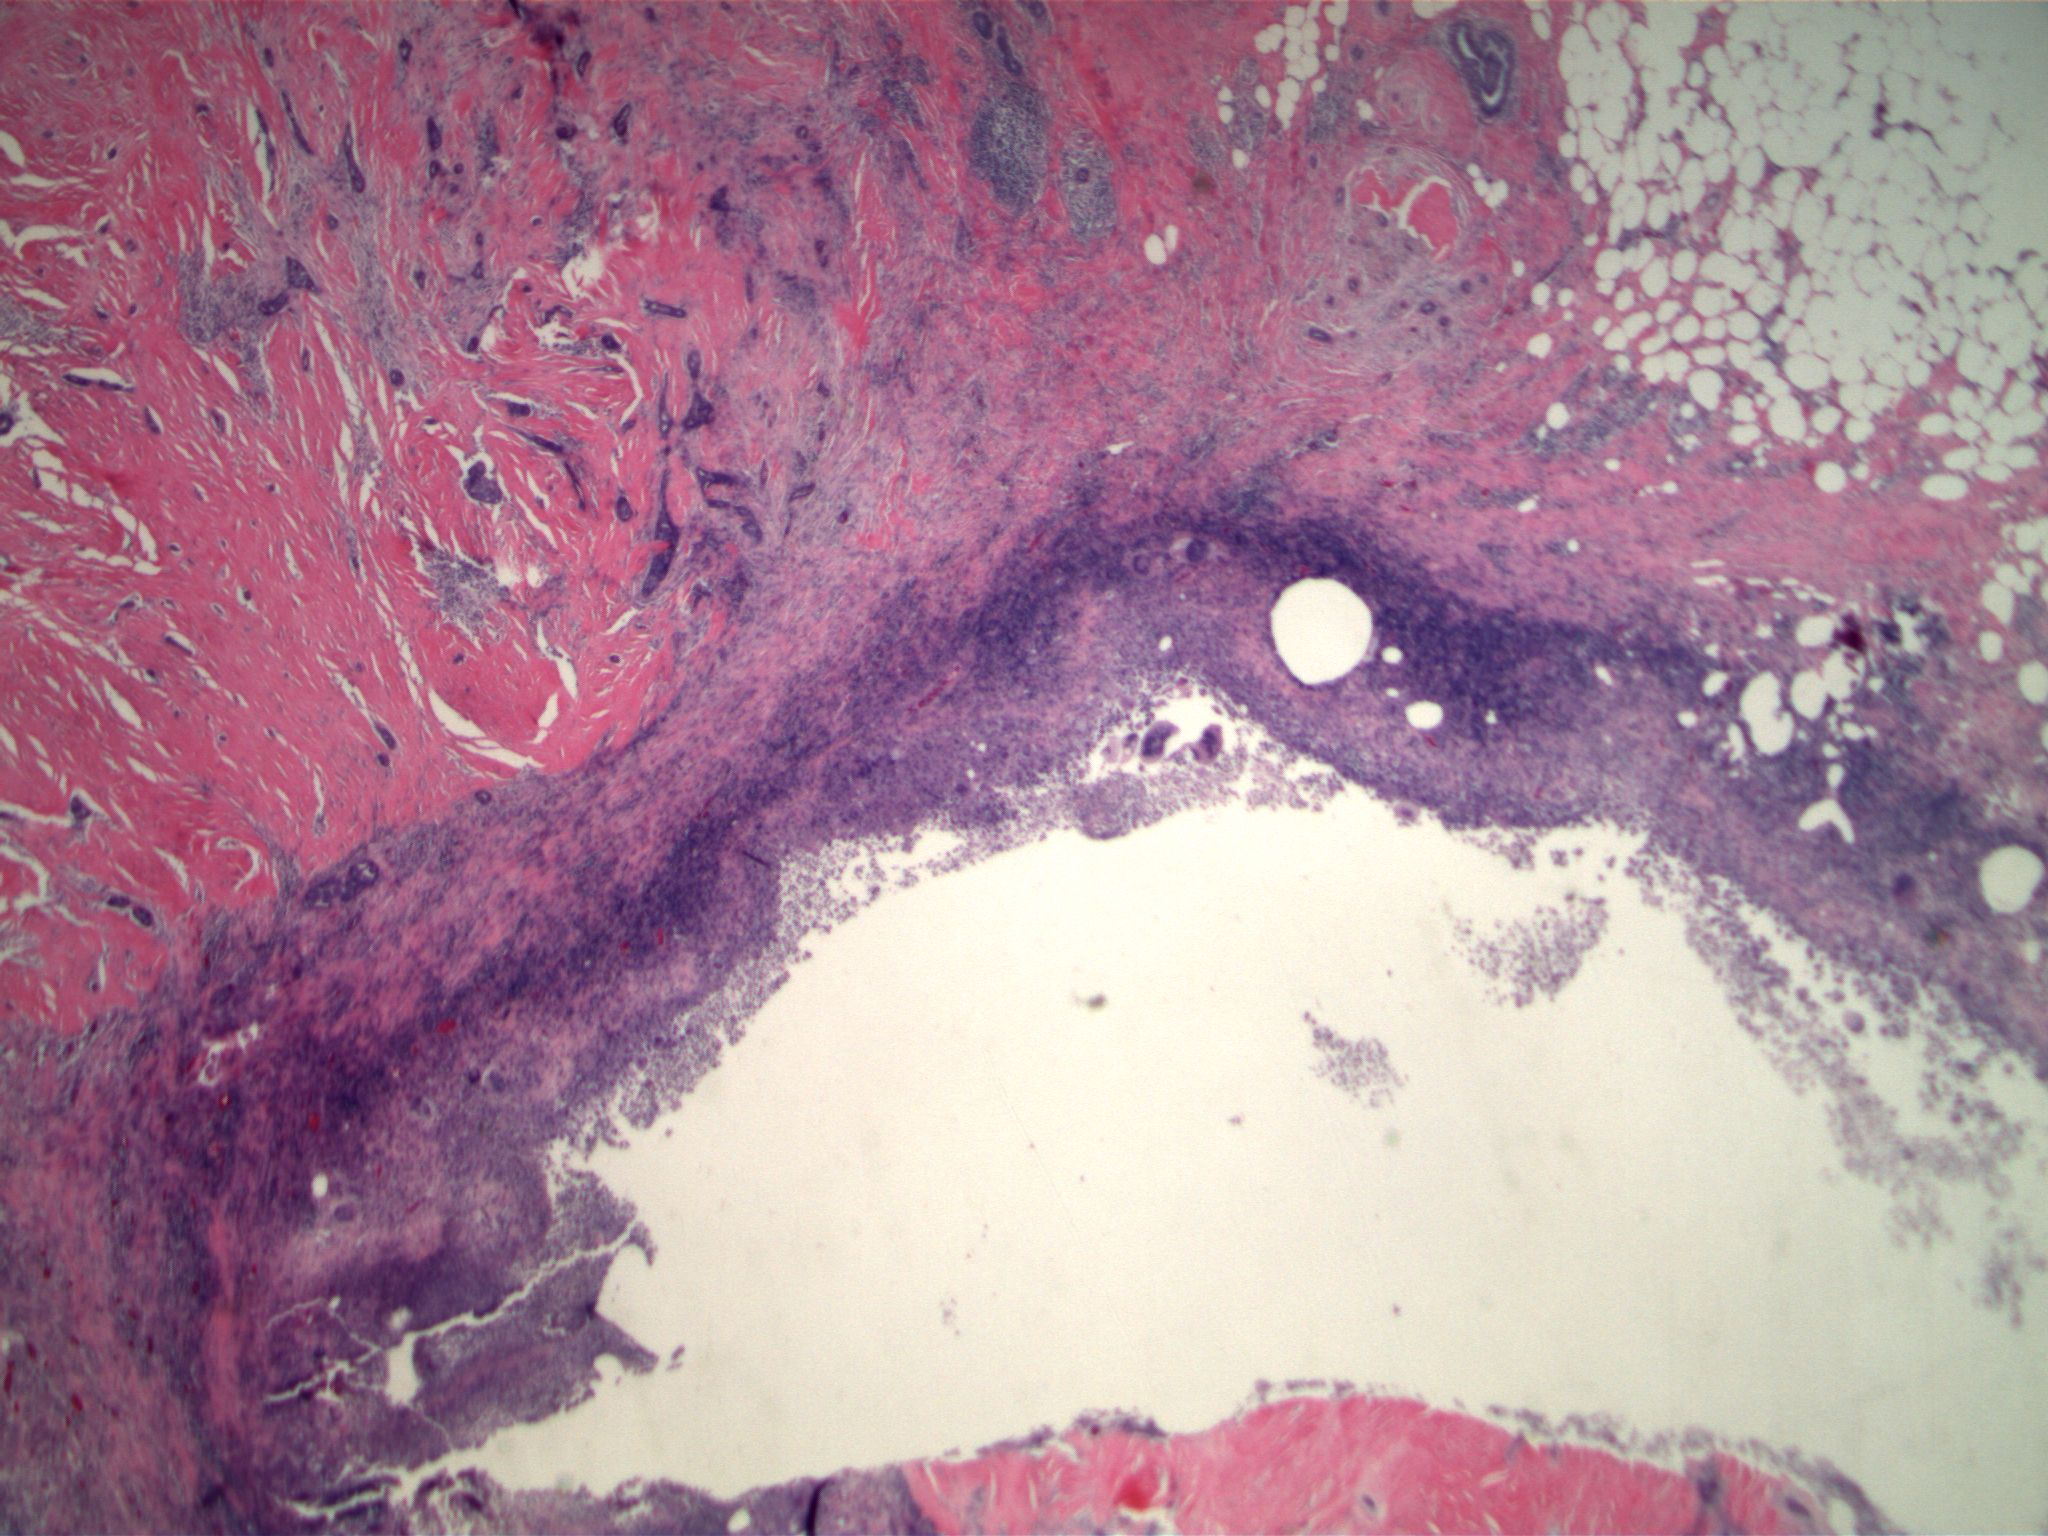 Image 2. The low grade adenosquamous carcinoma, originally diagnosed on core biopsy was present in the lumpectomy specimen. Note previous biopsy site